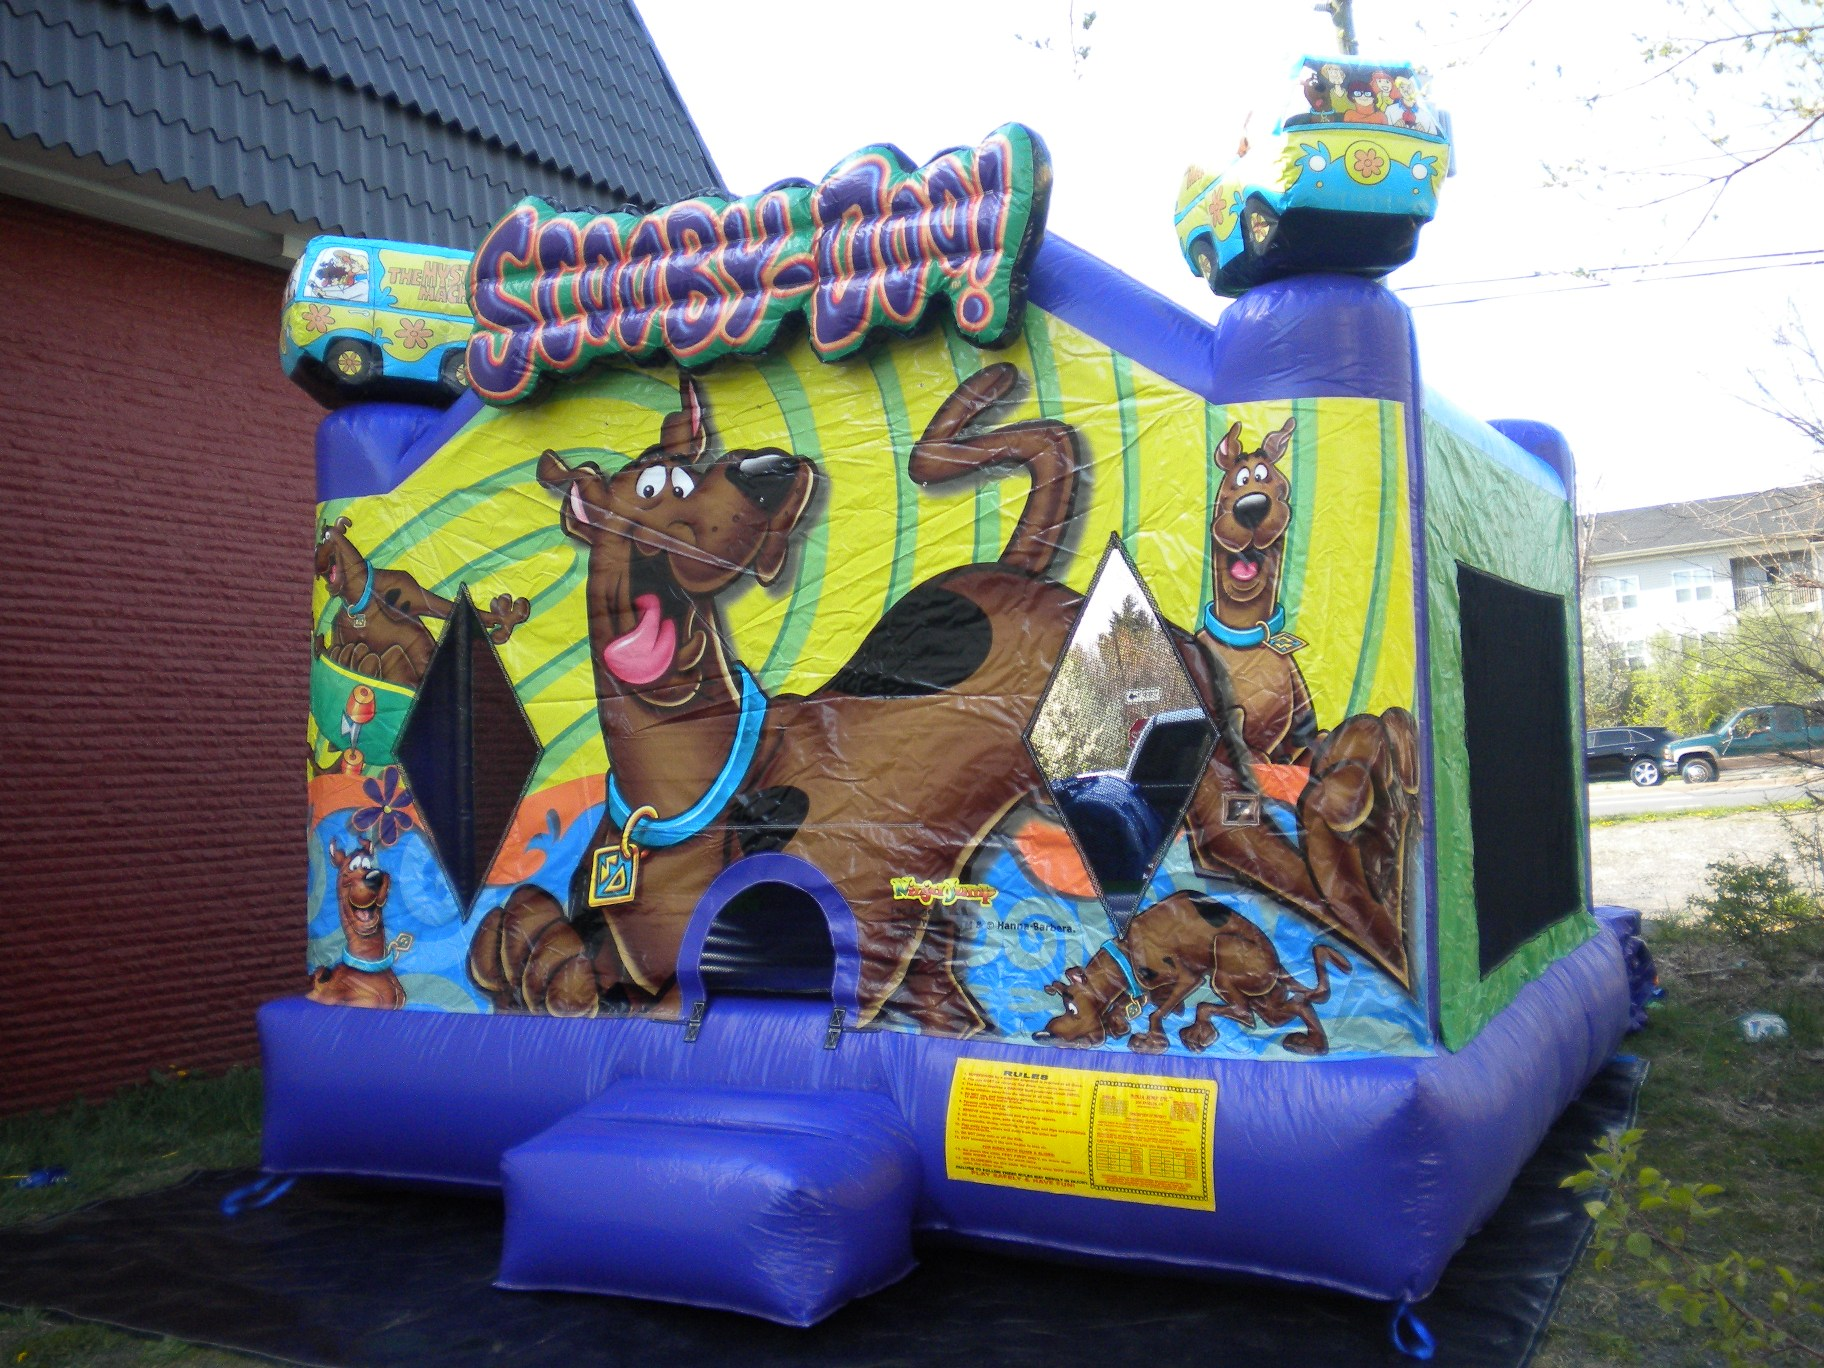 Scooby Doo Jumper Moonbounce Front Right View